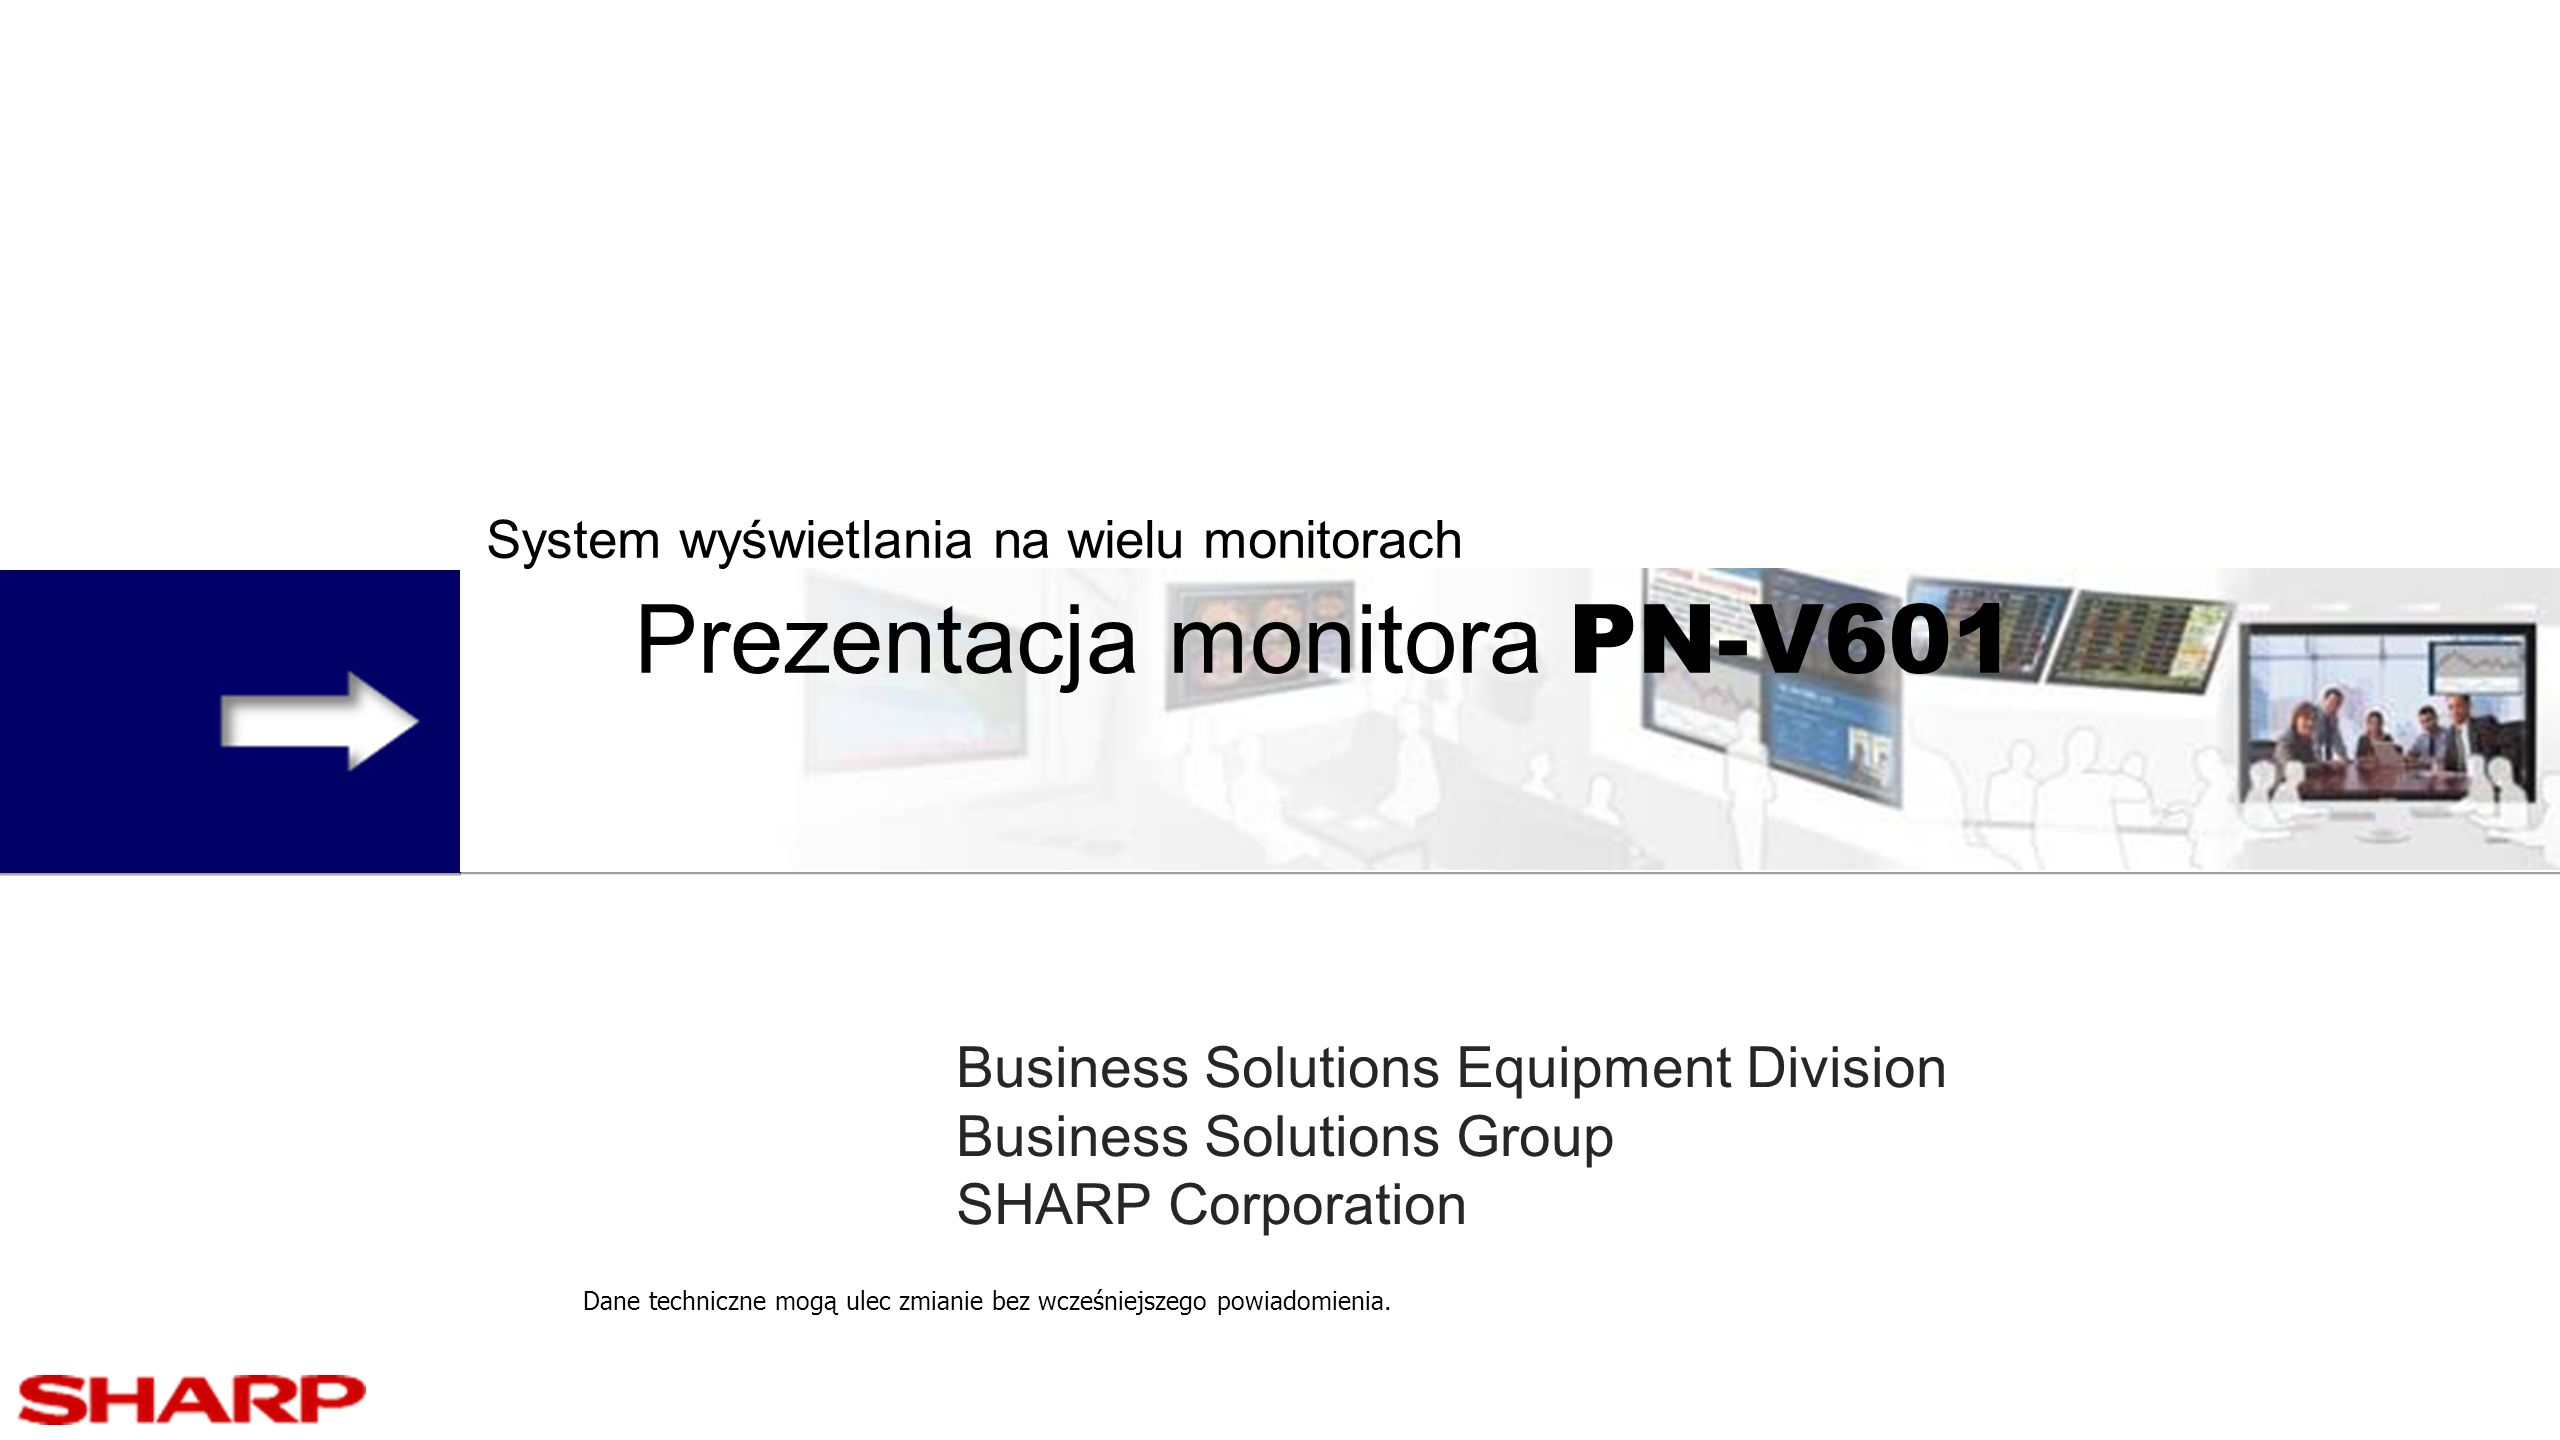 System wyświetlania na wielu monitorach Prezentacja monitora PN-V601 Business Solutions Equipment Division Business Solutions Group SHARP Corporation